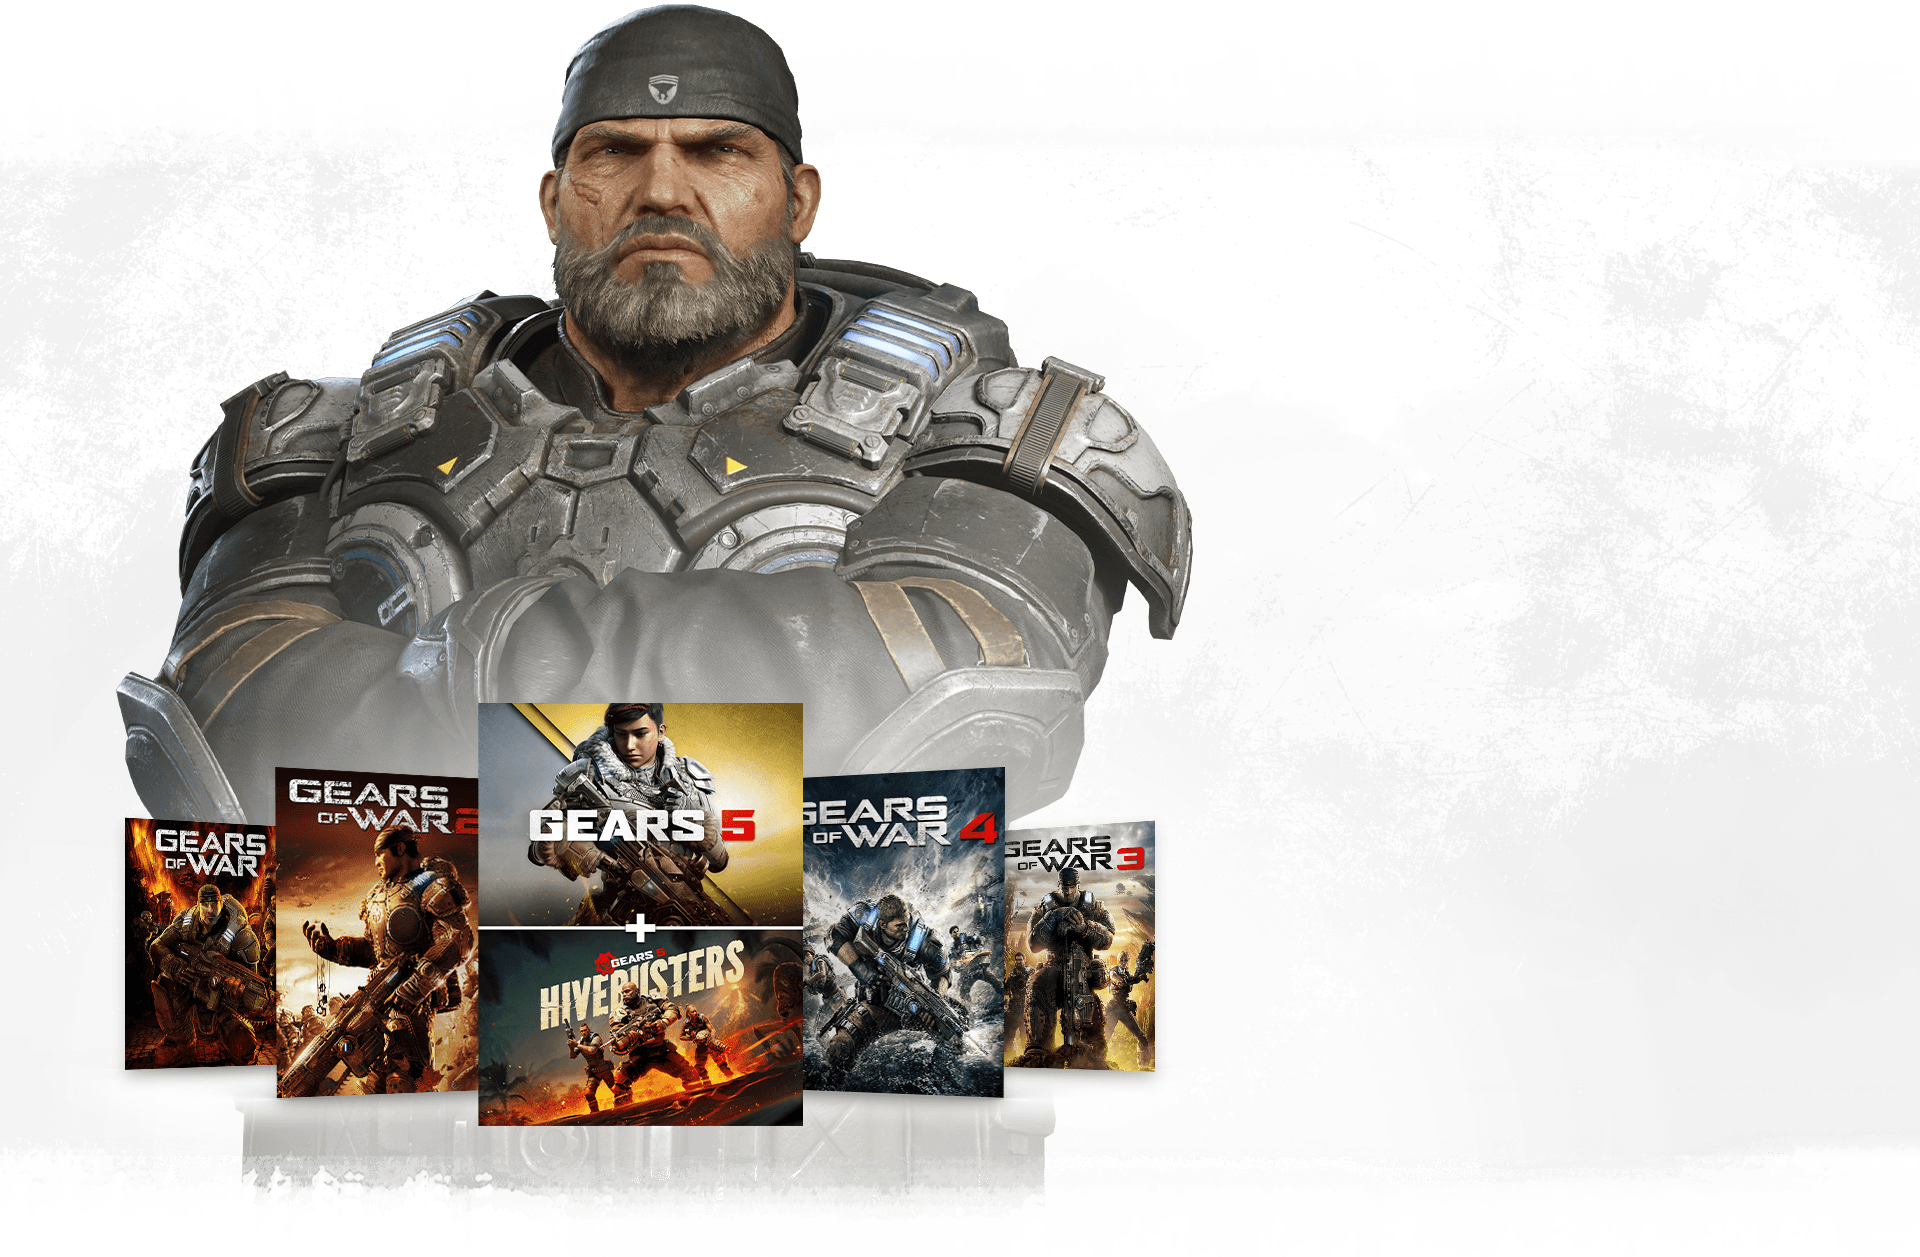 Row of gears box shots with Marcus Fenix standing behind with arms crossed